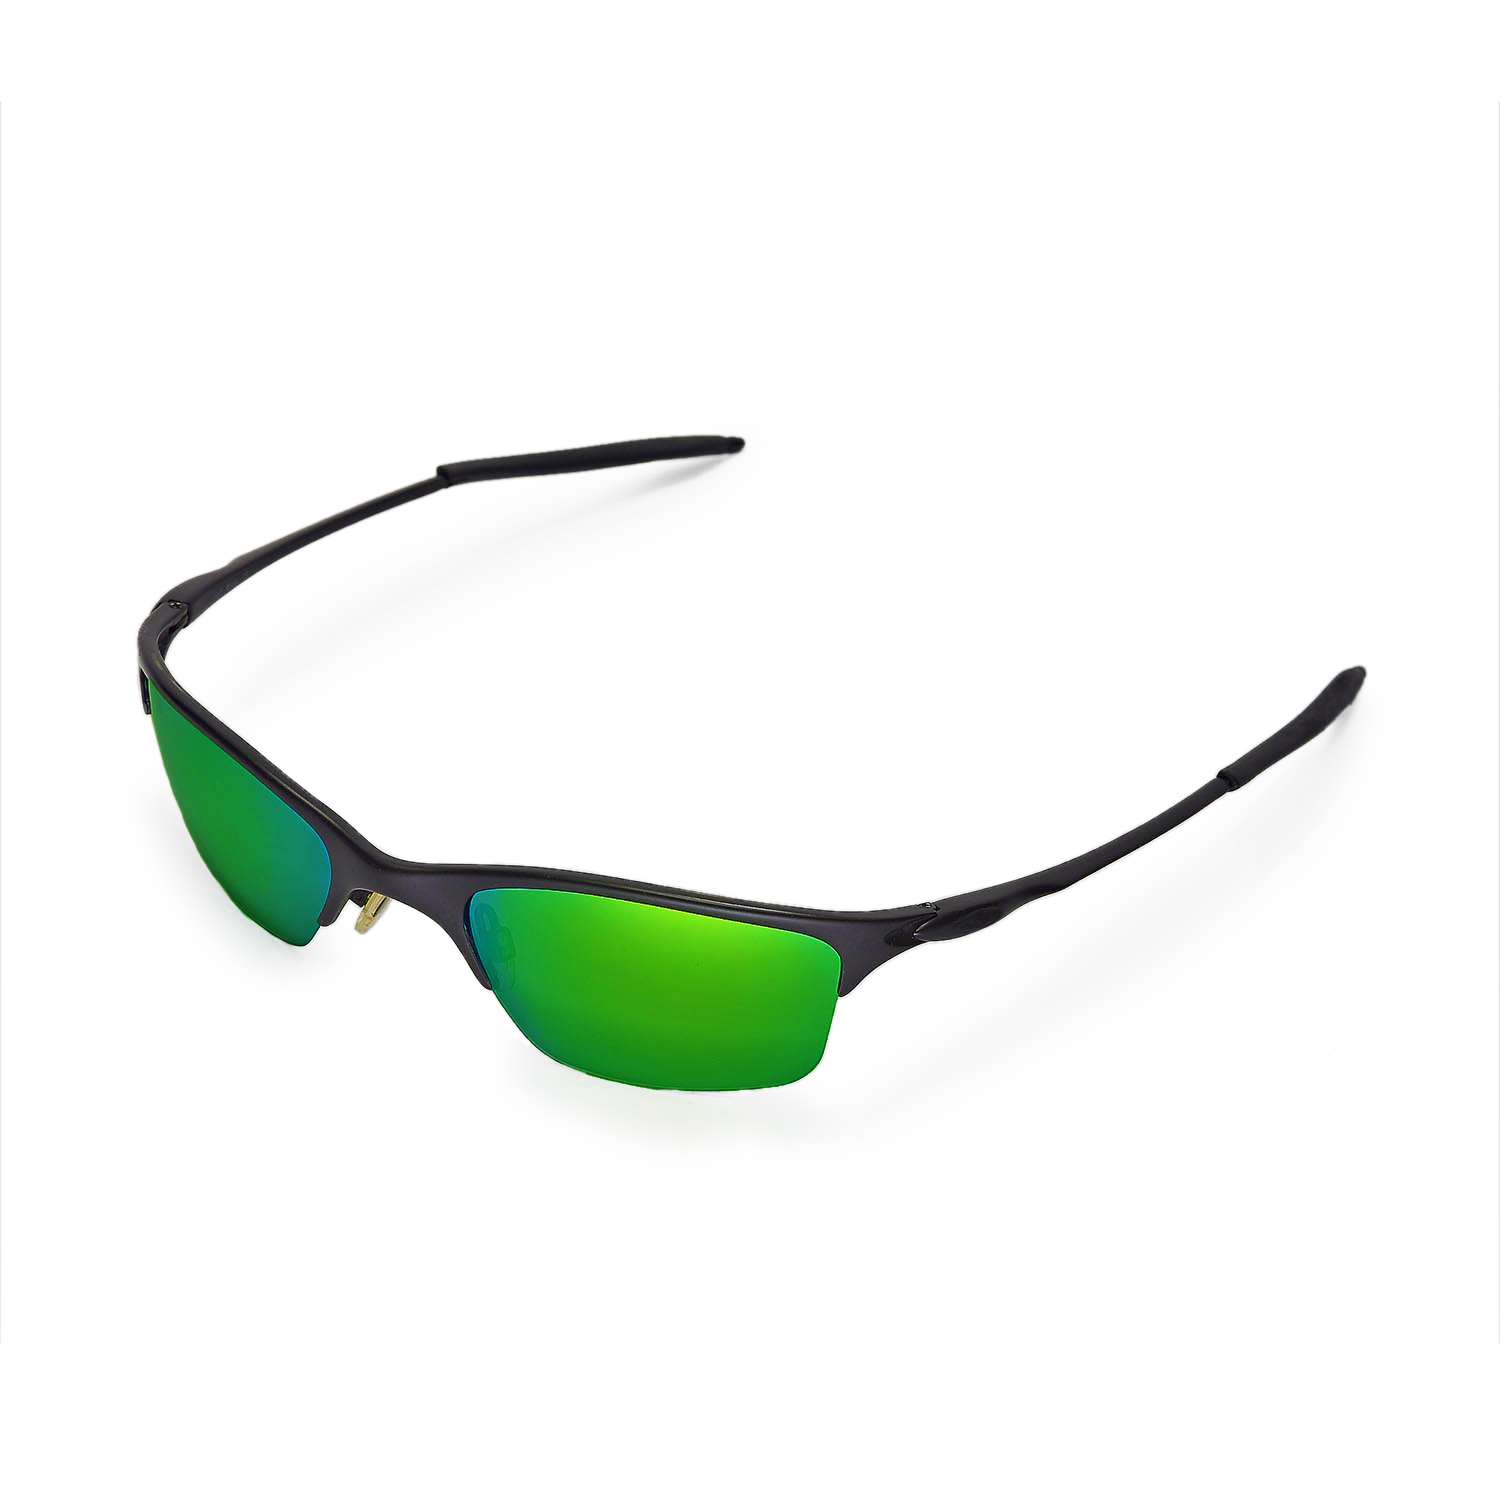 86355c12e28 New WL Polarized Emerald Replacement Lenses For Oakley Half Wire XL  Sunglasses 639725111885